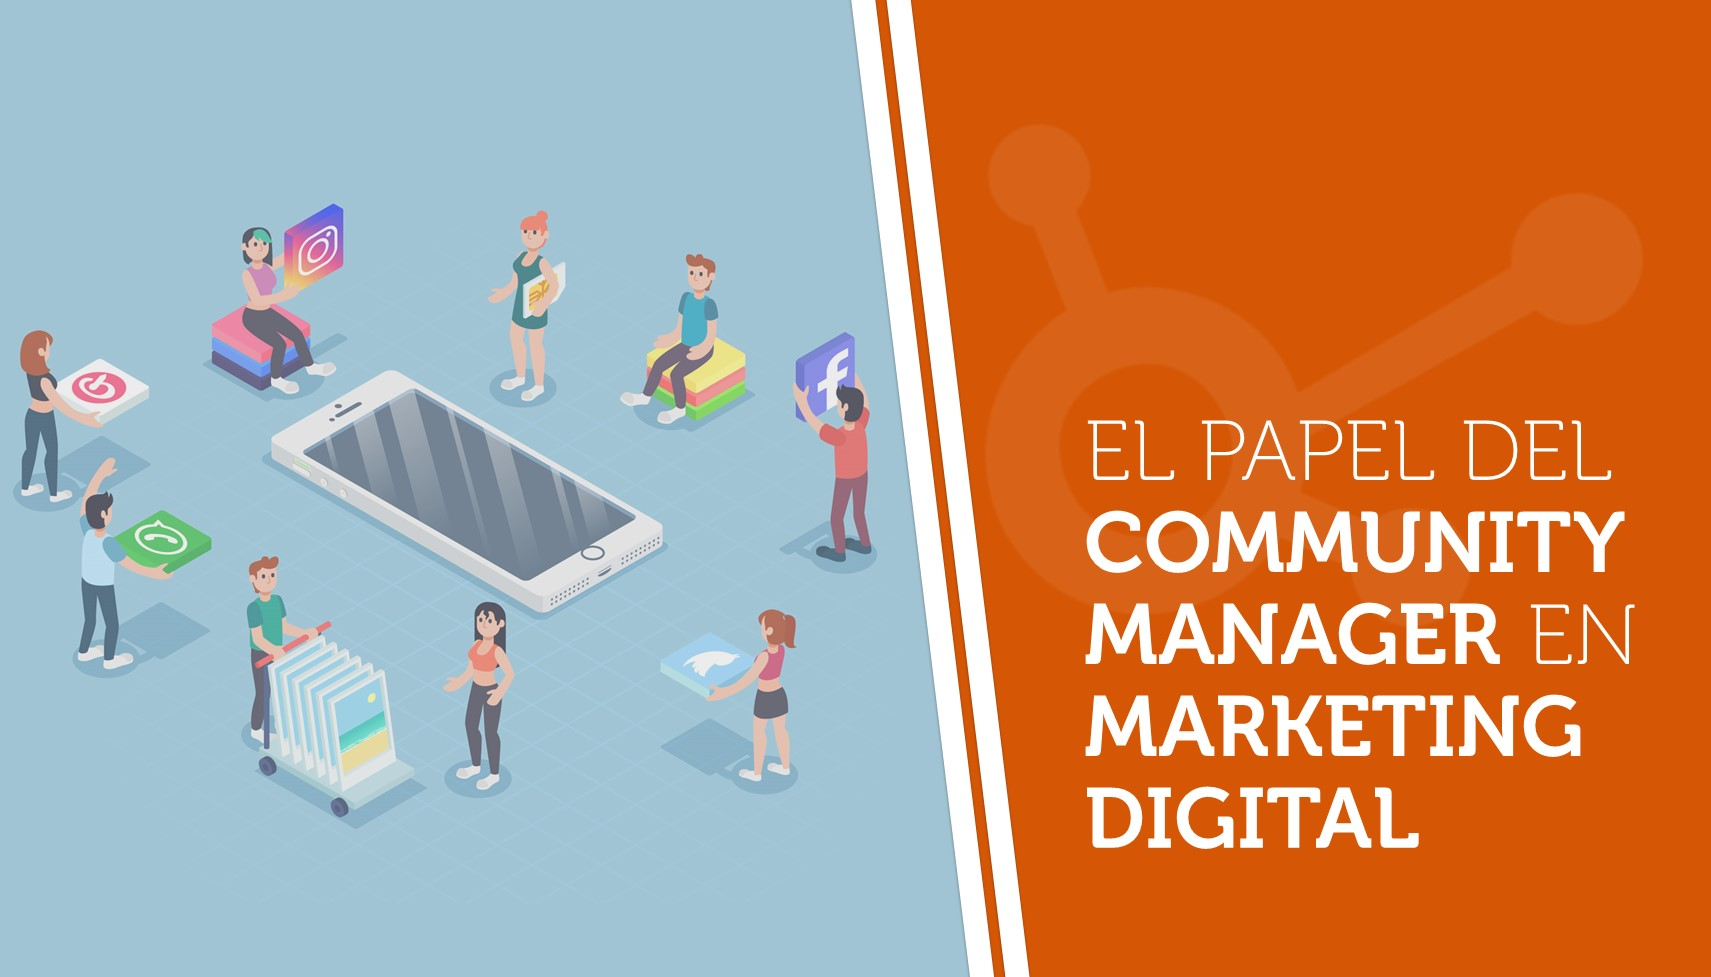 papel-del-community-manager-en-marketing-digital